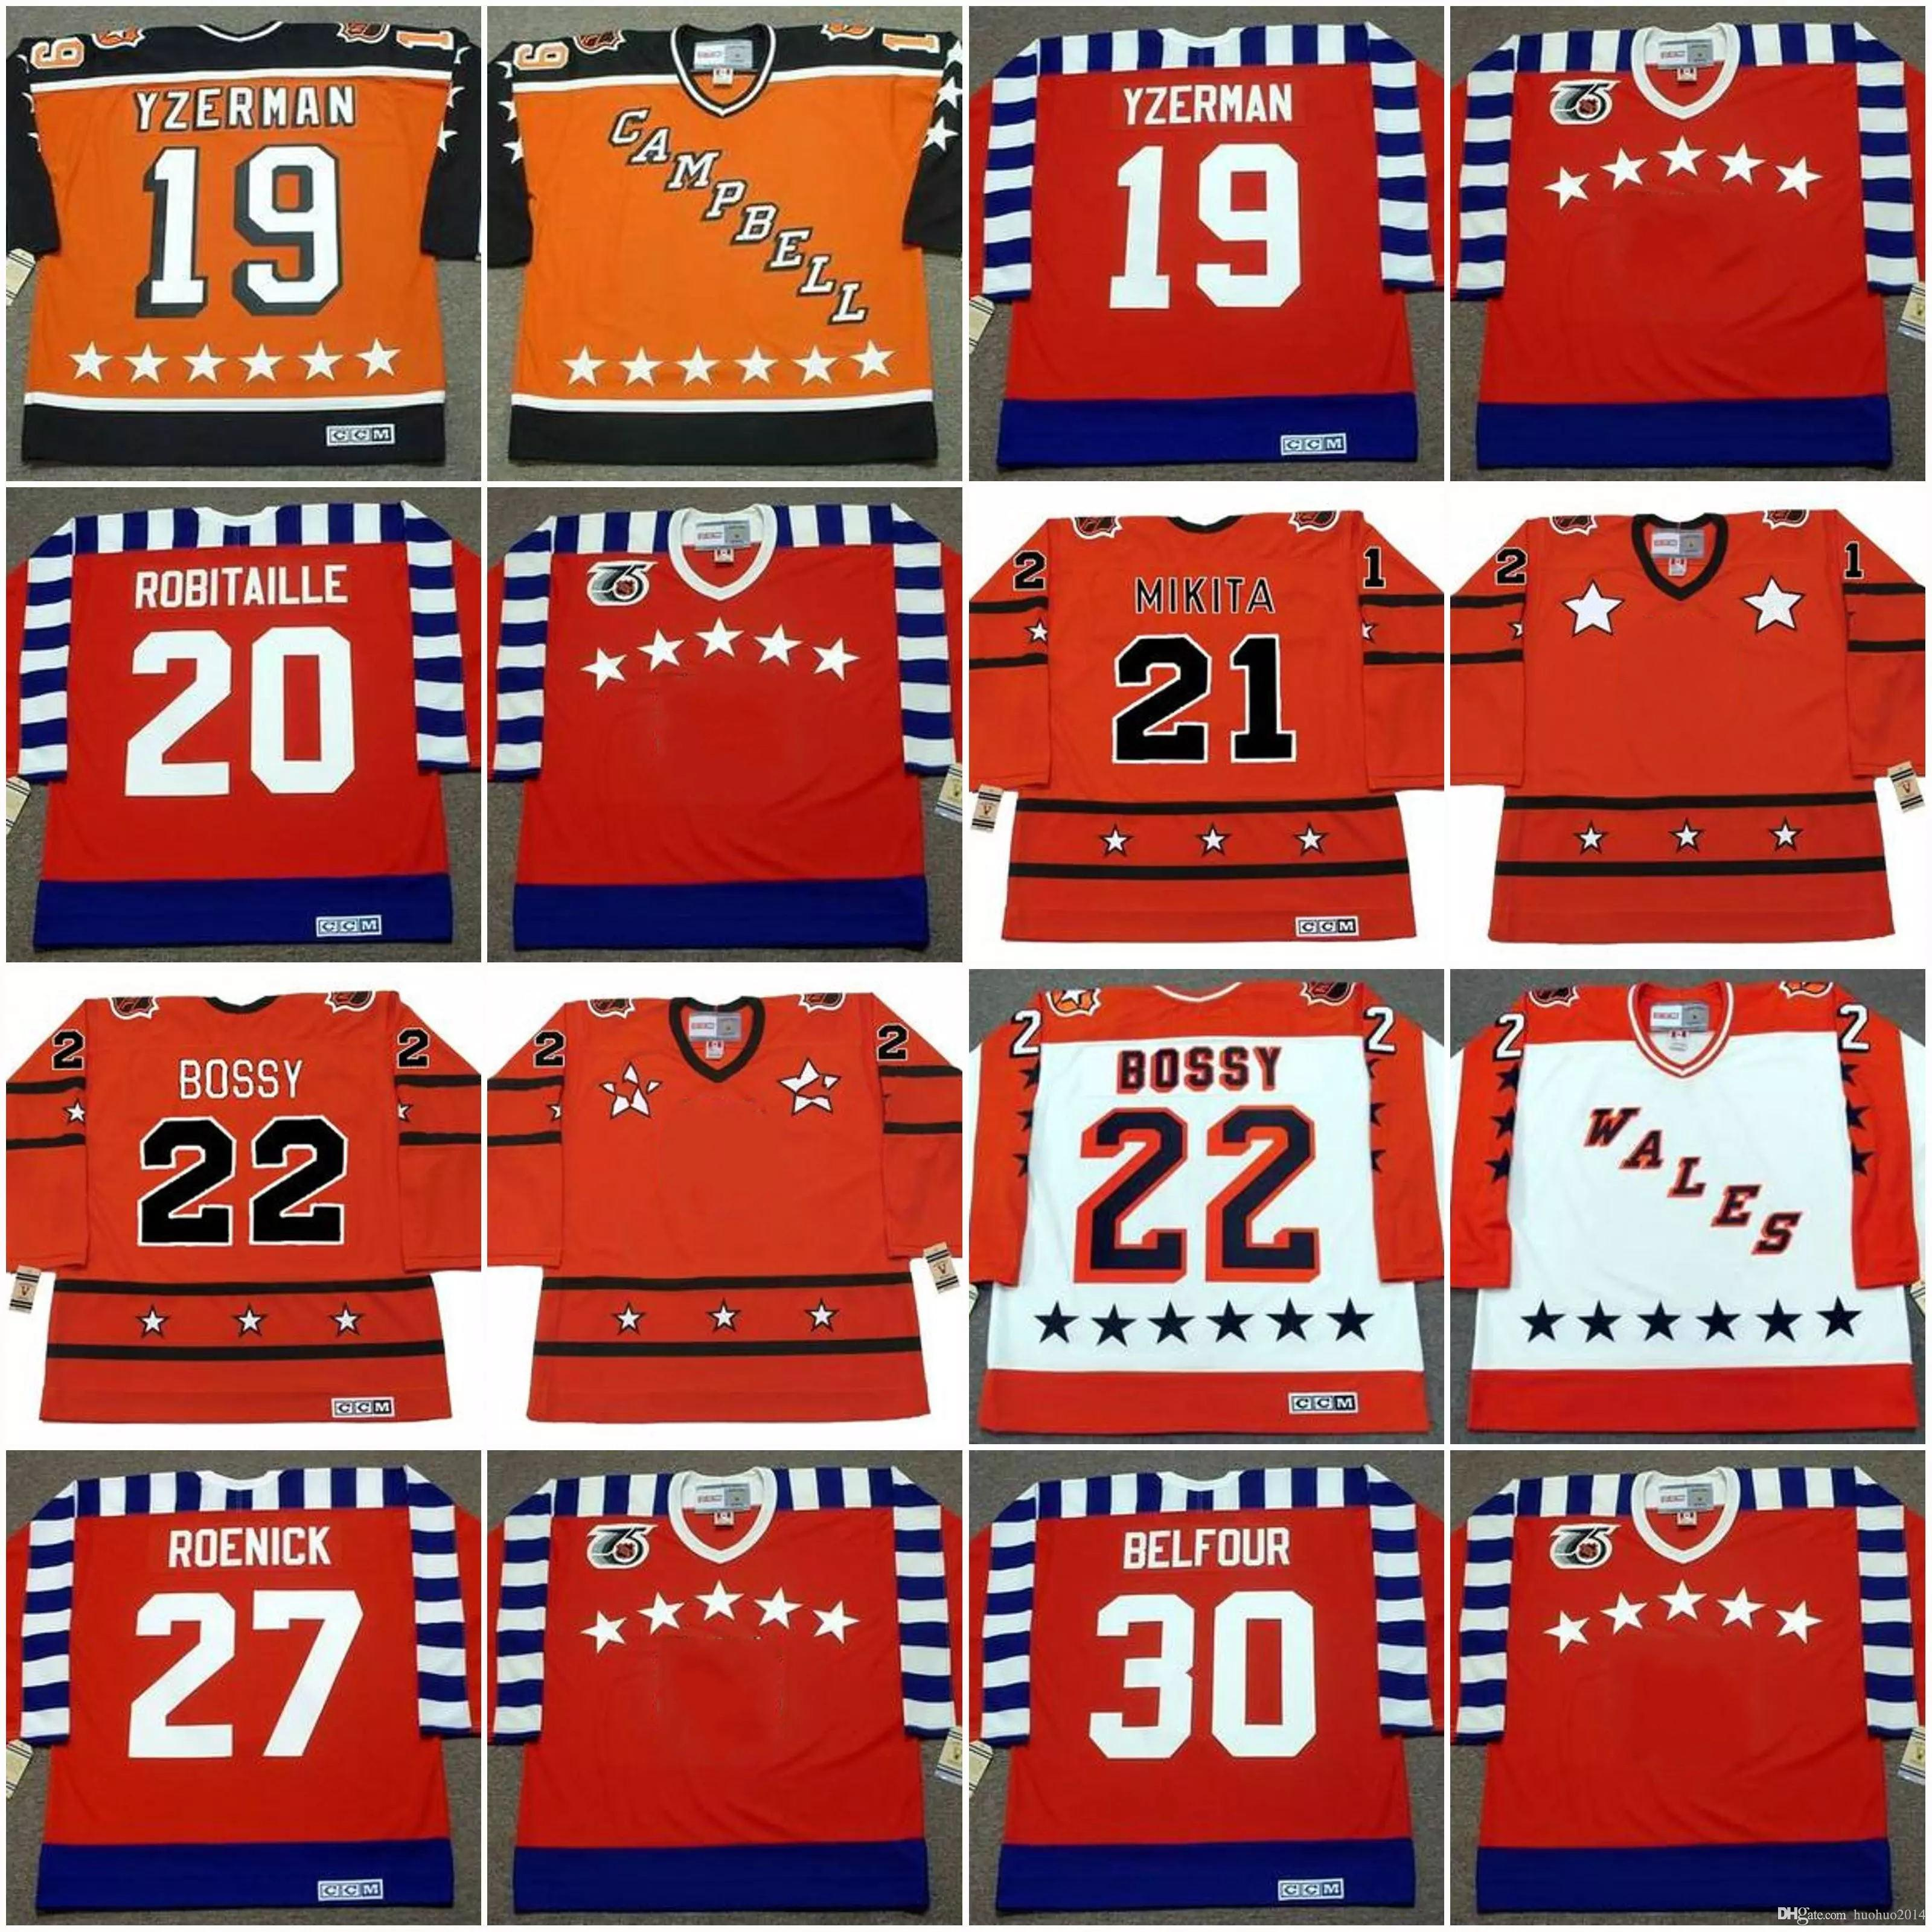 2019 Wales All Star Jersey 19 STEVE YZERMAN 1984 20 LUC ROBITAILLE 21 STAN  MIKITA 22 MIKE BOSSY JEREMY ROENICK Hockey Jerseys From Huohuo2014 45bd08037